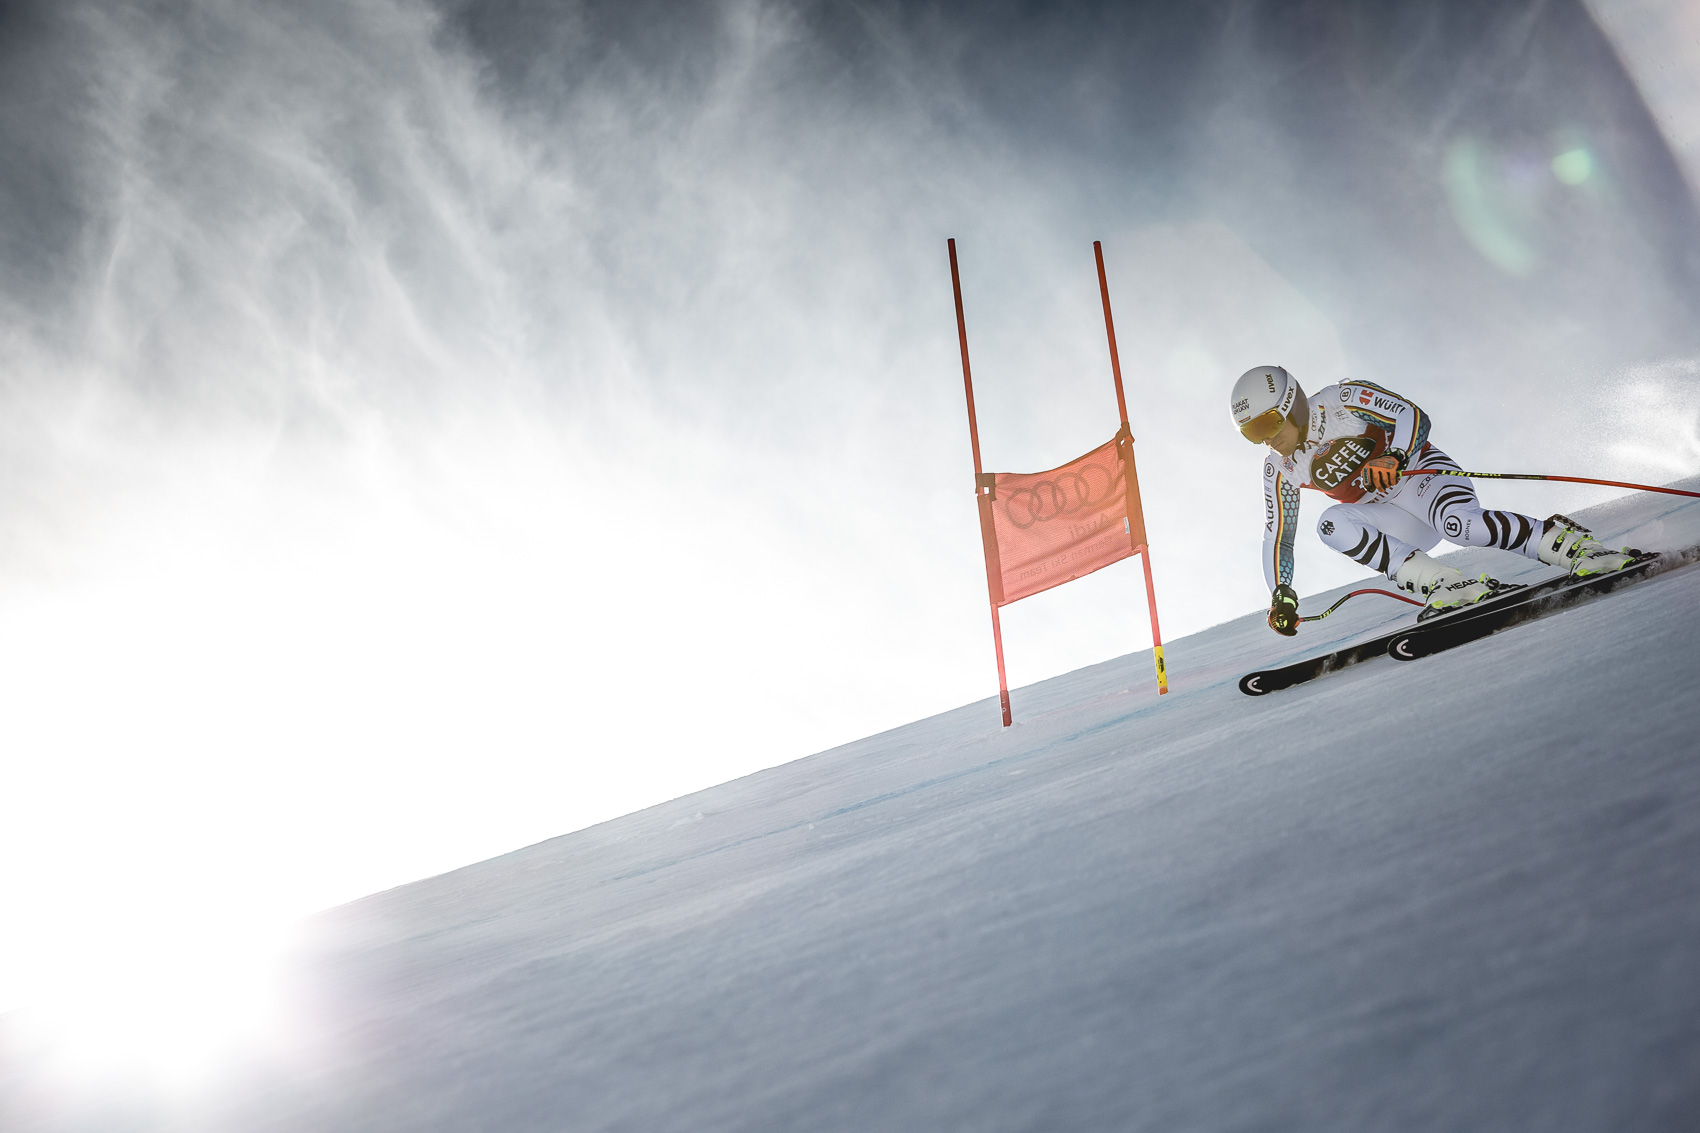 Sports, Commercial & Lifestyle Photography Rudi Wyhlidal